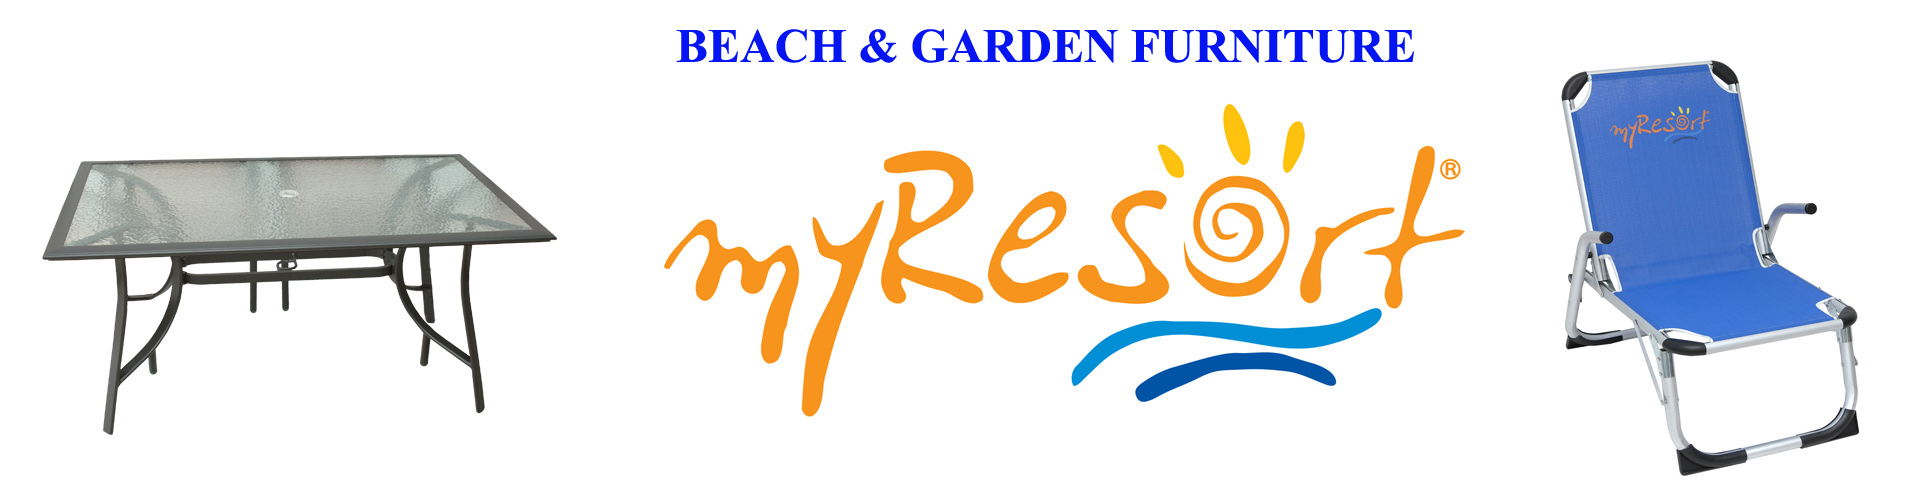 BEACH & GARDEN FURNITURE